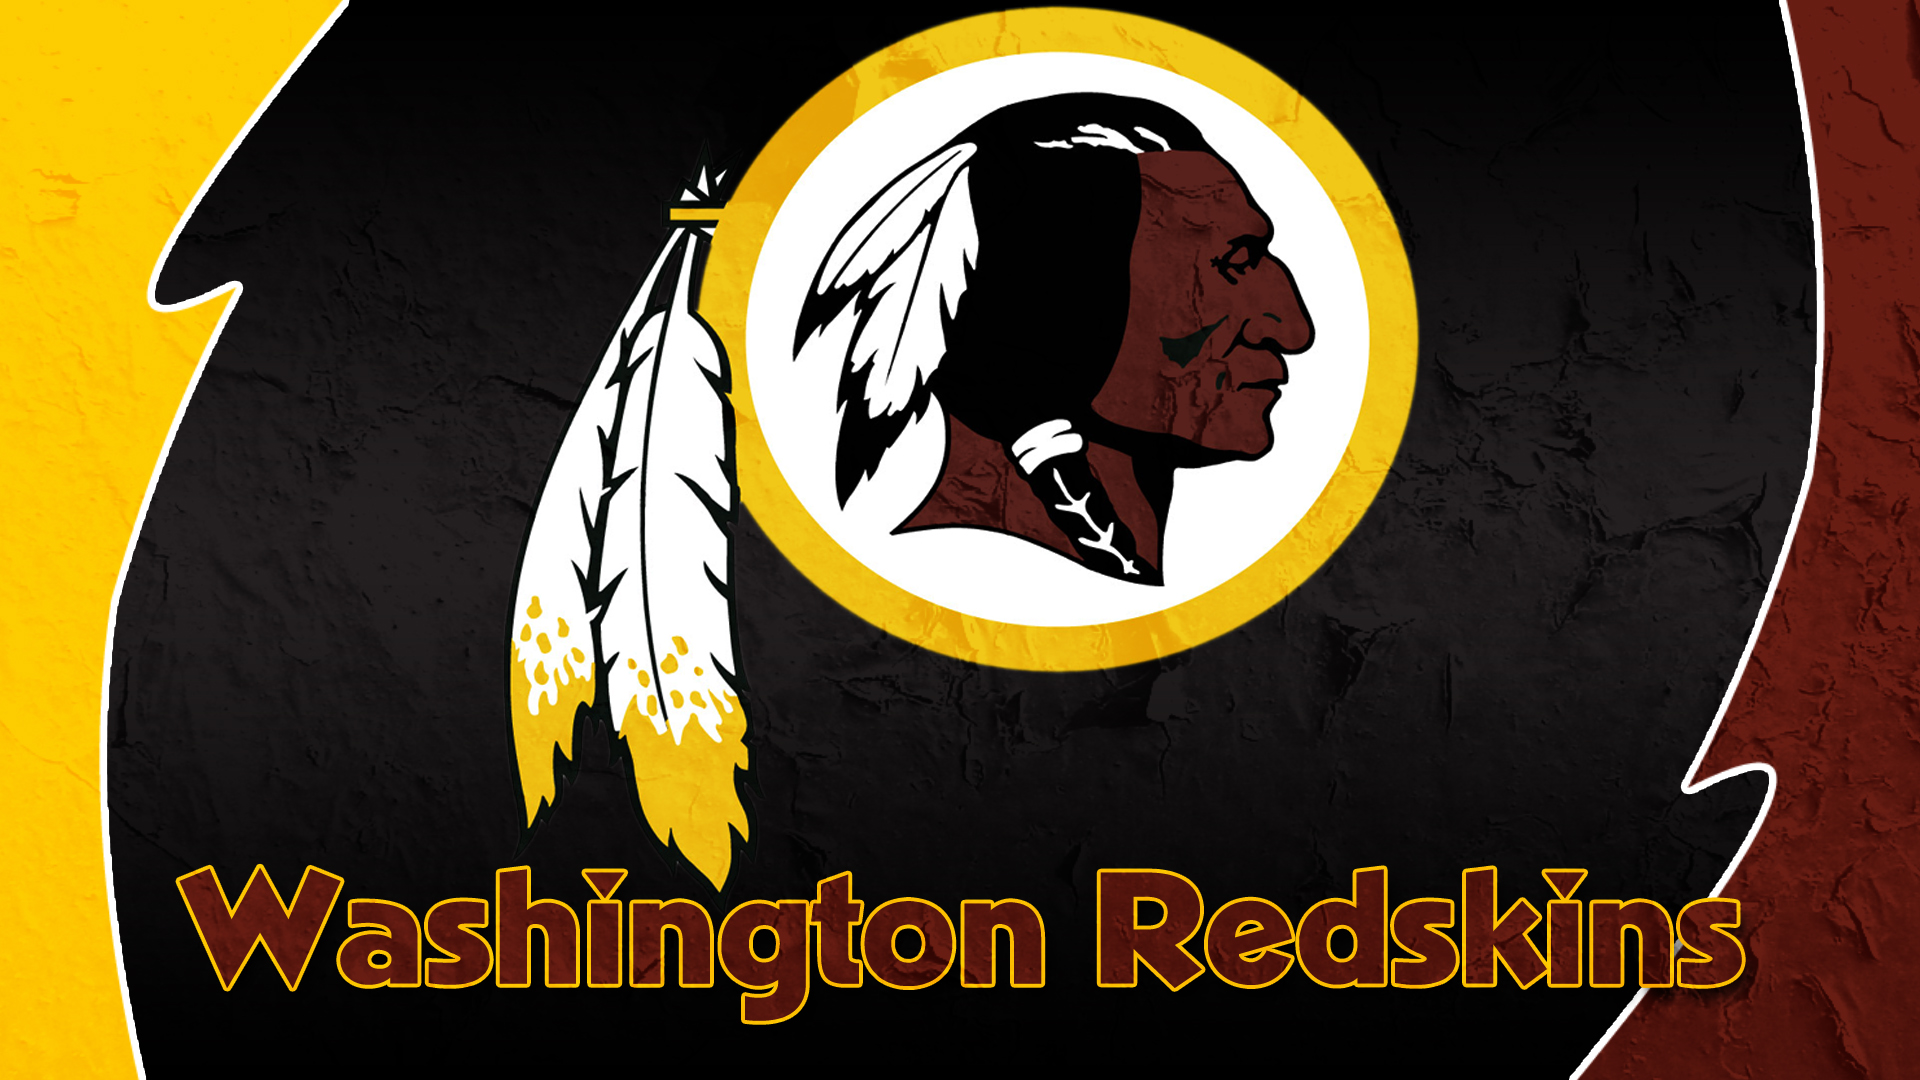 Washington Redskins wallpaper   1113081 1920x1080